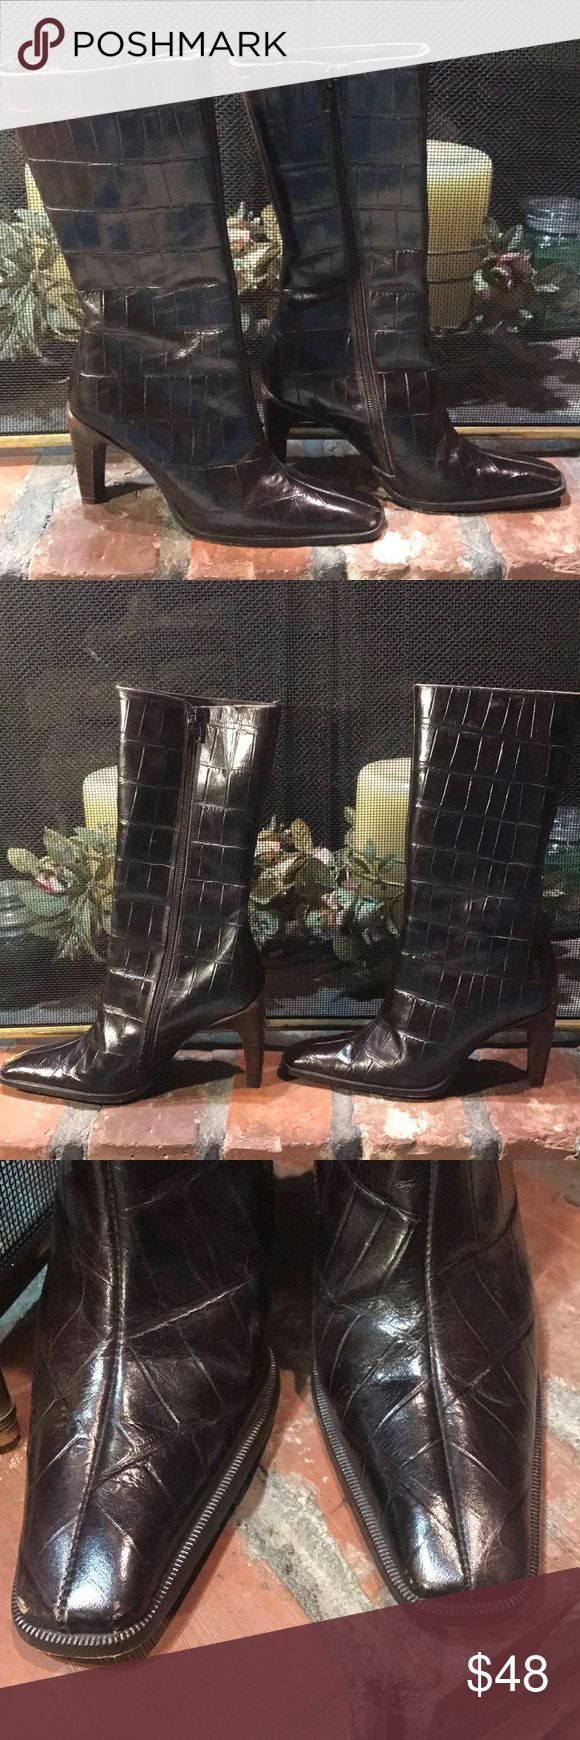 Charles David Brown Leather Croc Boots Charles David Brown Leather Croc Boots!  Great quality shoes.  Does shoe wear with scuffs and scratches. Charles David Shoes Heeled Boots